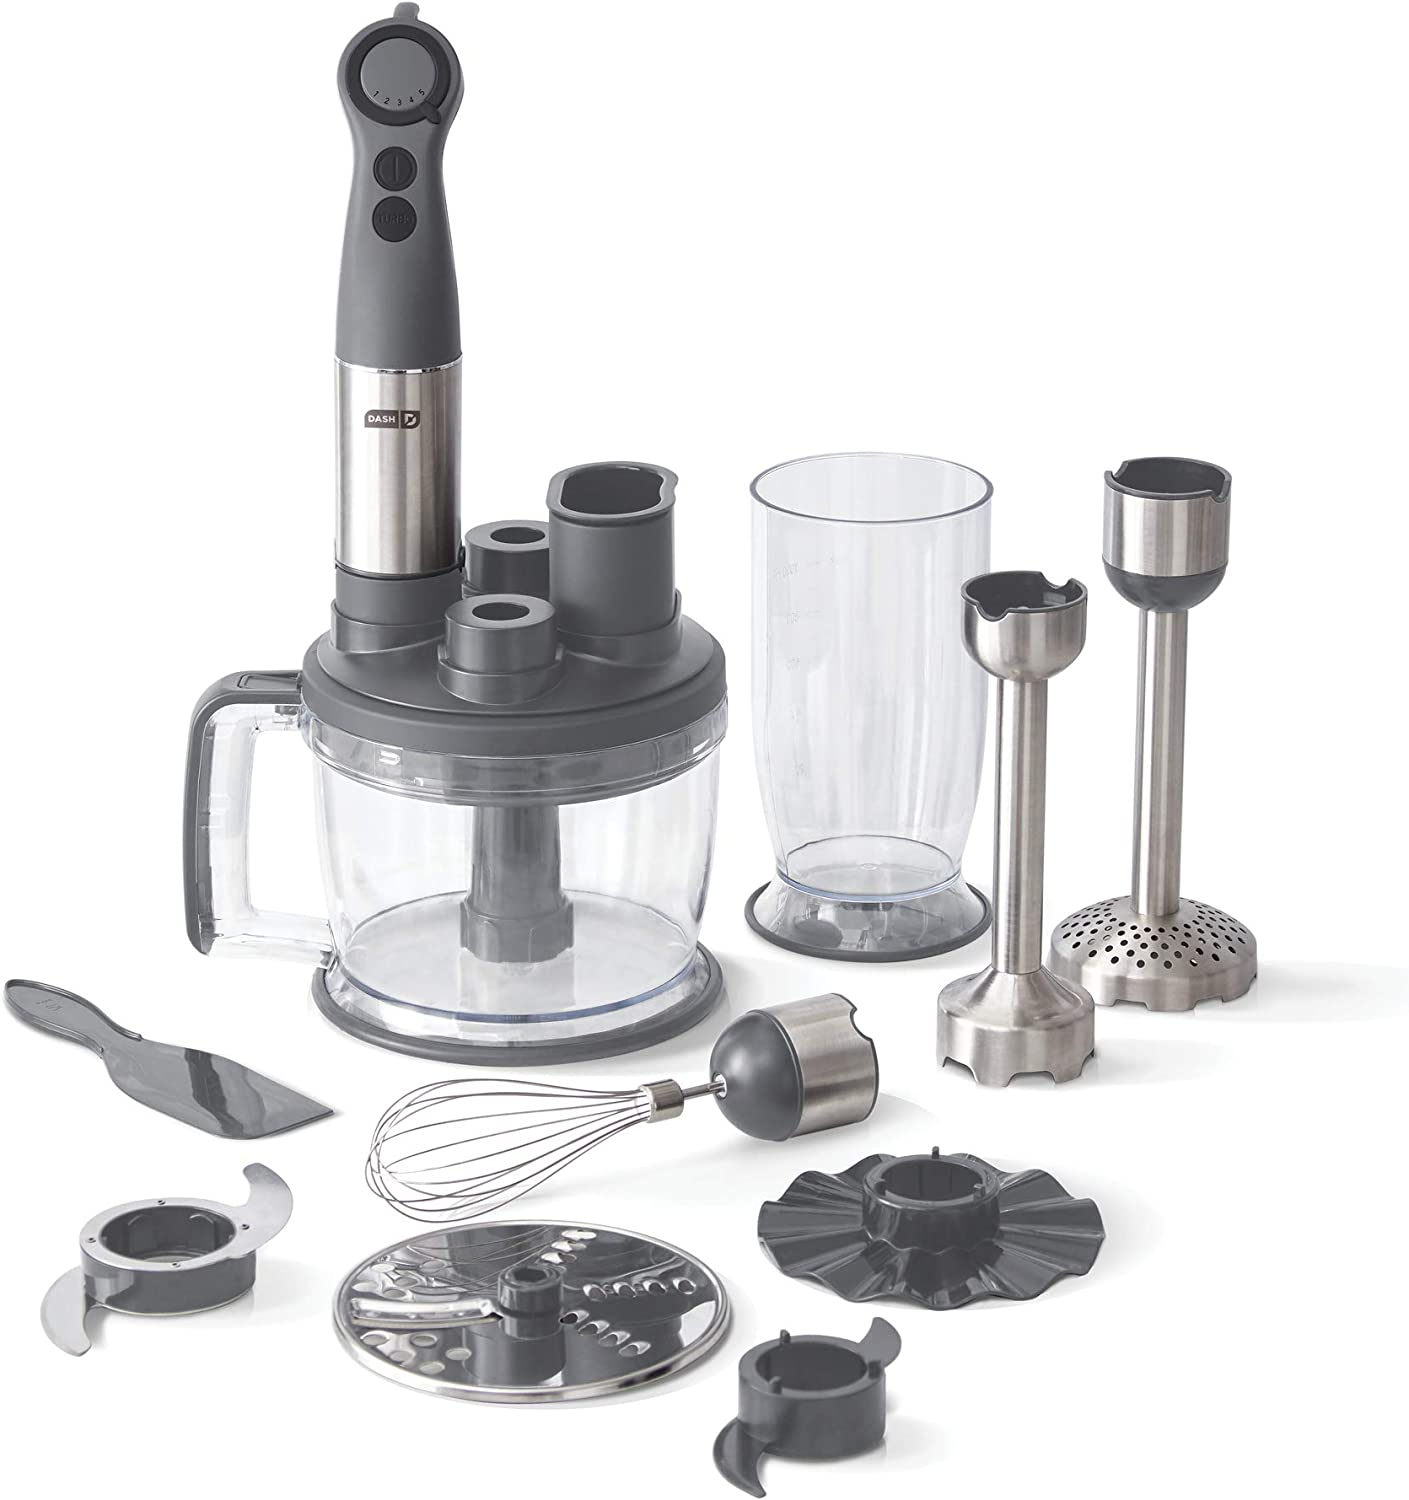 Dash Chef Series Deluxe Immersion Hand Blender, 5 Speed Stick Blender with Stainless Steel Blades, Dough Hooks, Food Processor, Grate, Mash, Slice, Whisk Attachments and Recipe Guide – Cool Grey